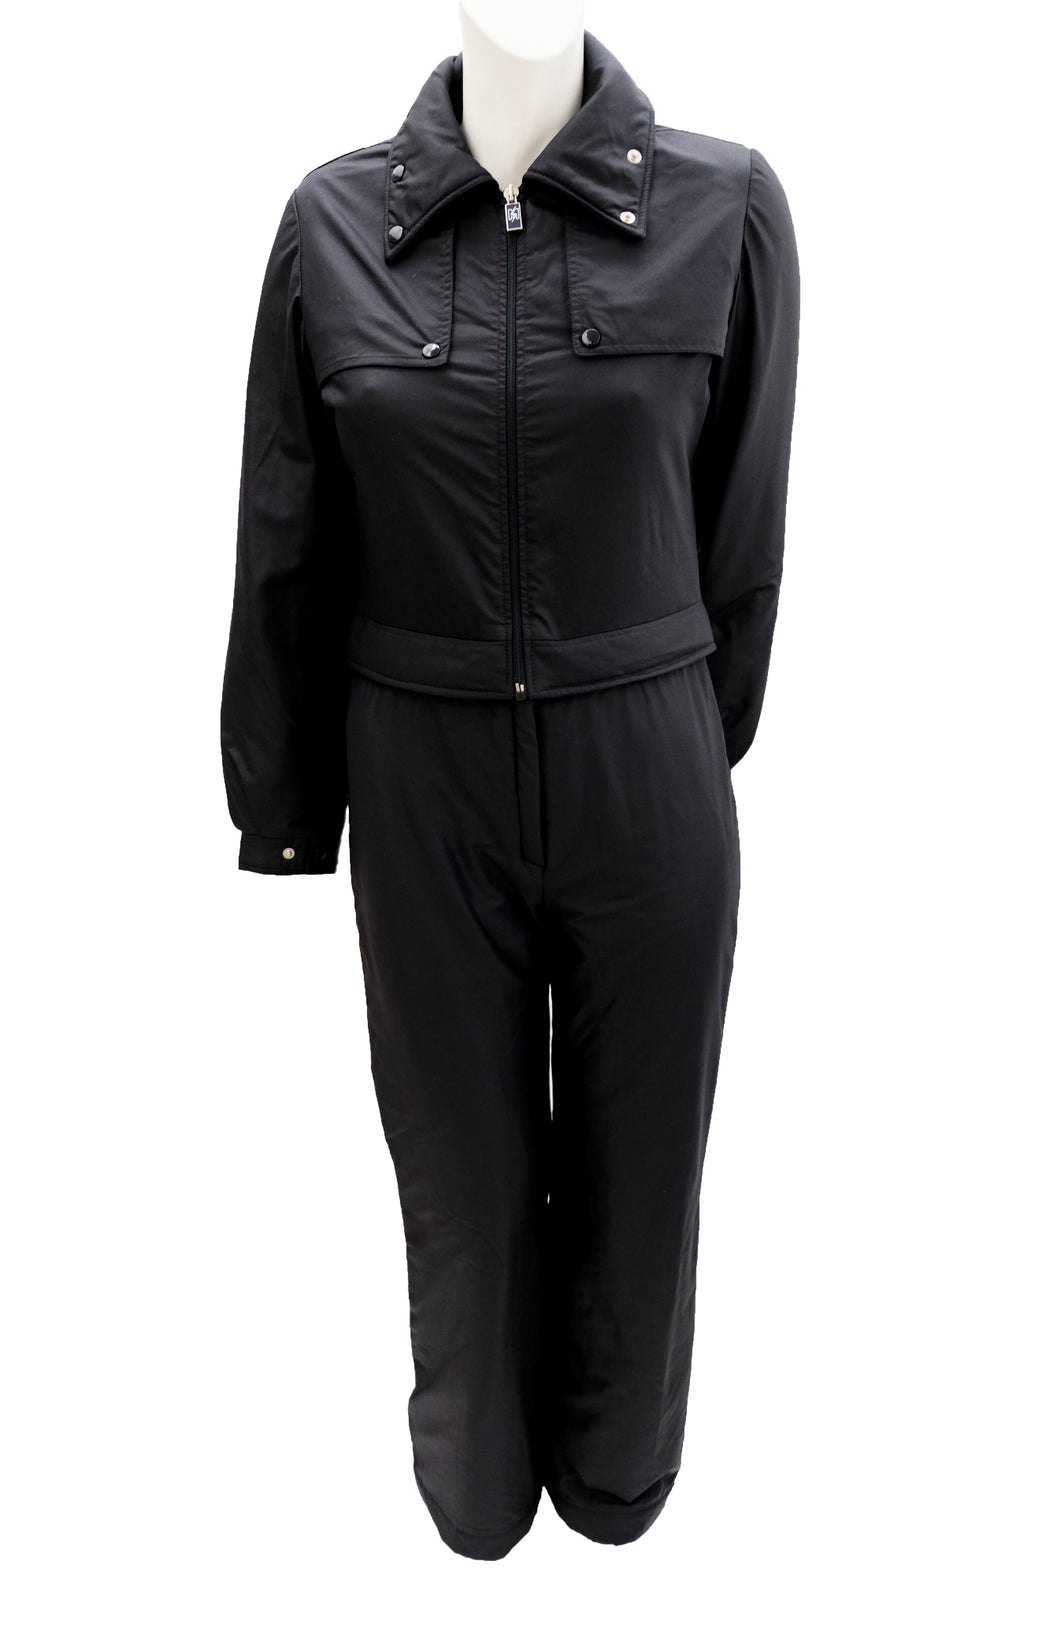 Skimer Vintage Detachable All in One Ski Suit in Black, UK10